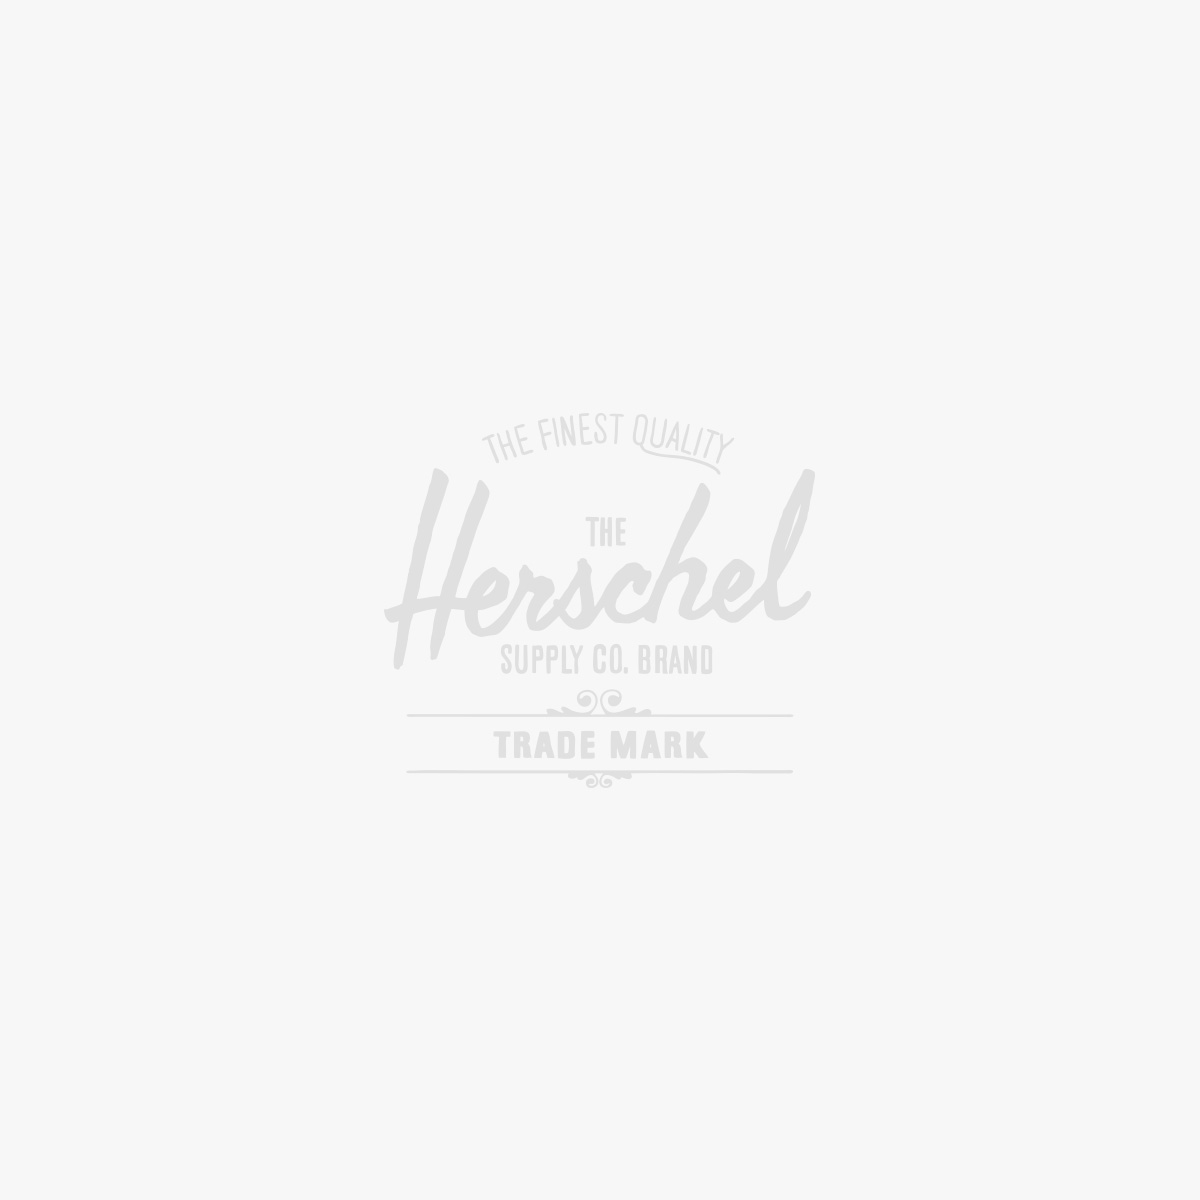 fde6a9a1a Tote Bags | Totes | Herschel Supply Company